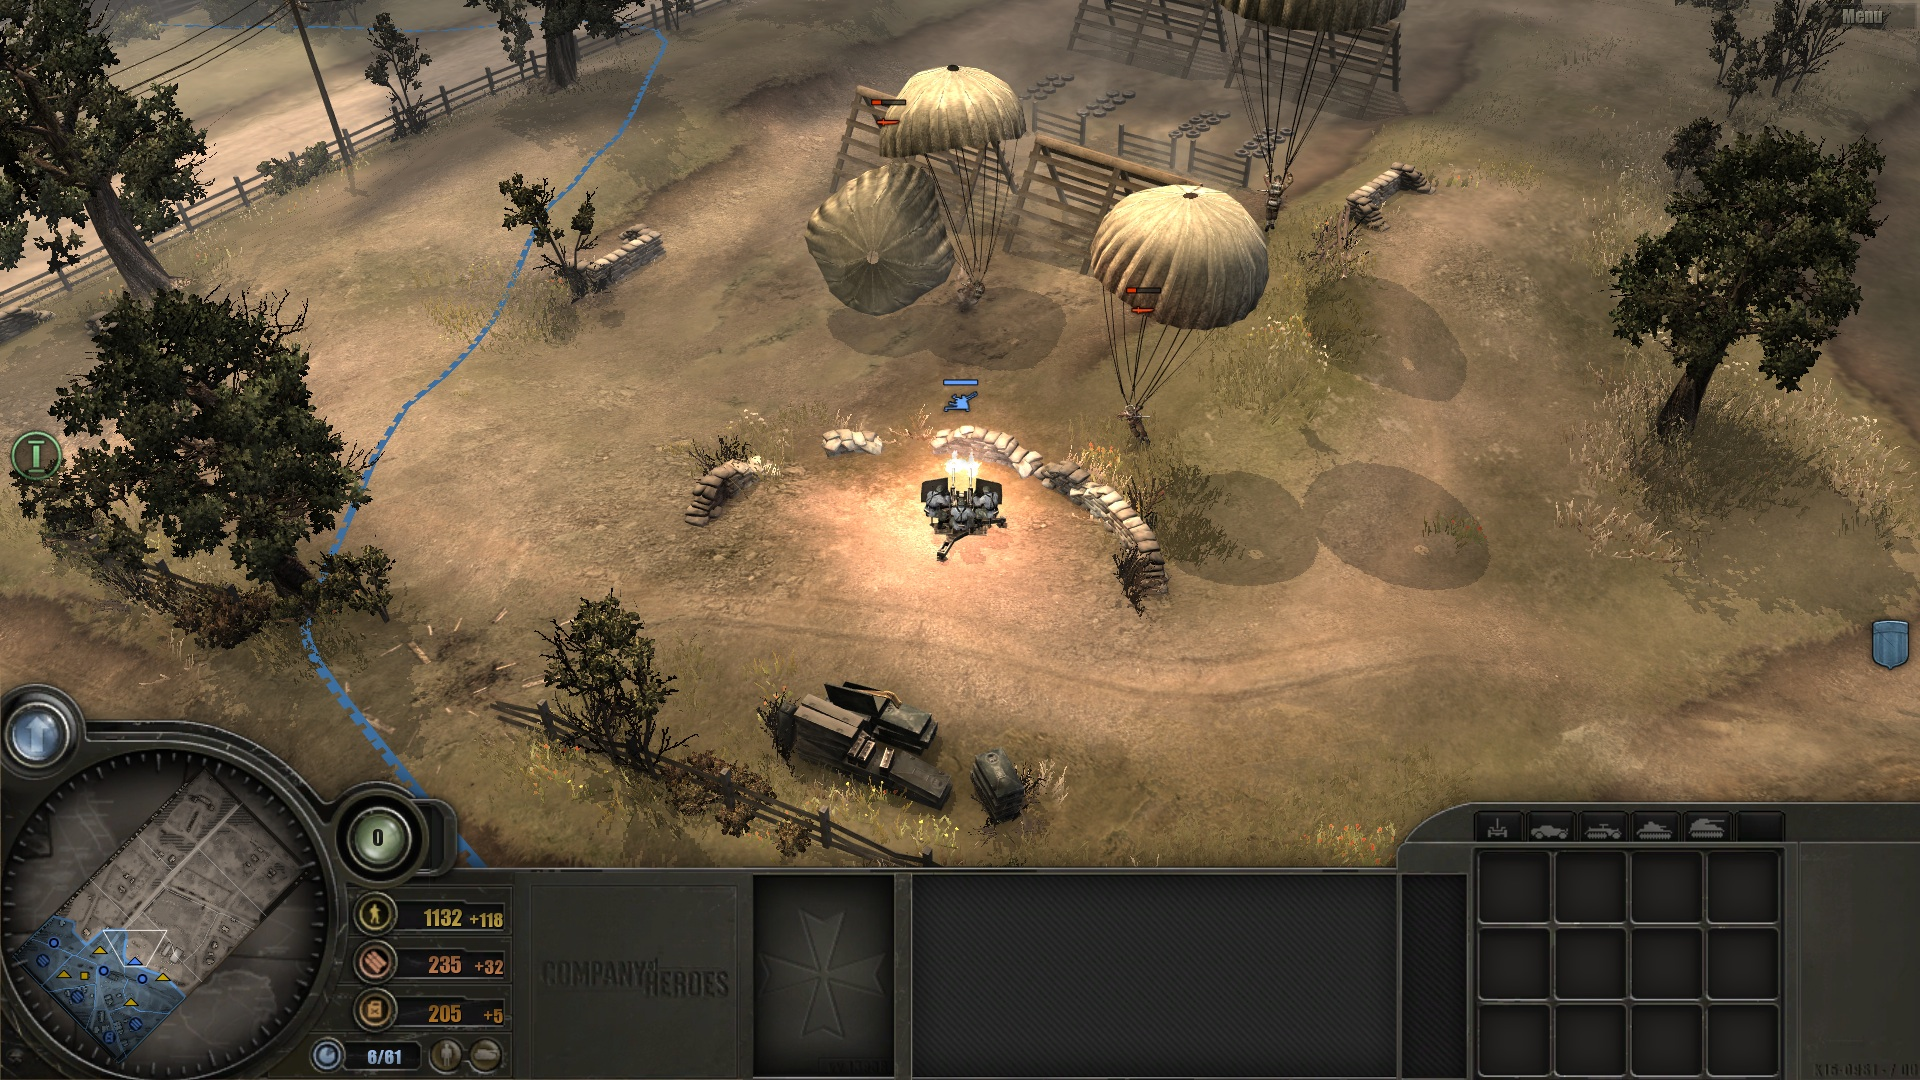 Skirmish Mode Comes to Company of Heroes Campaign Edition